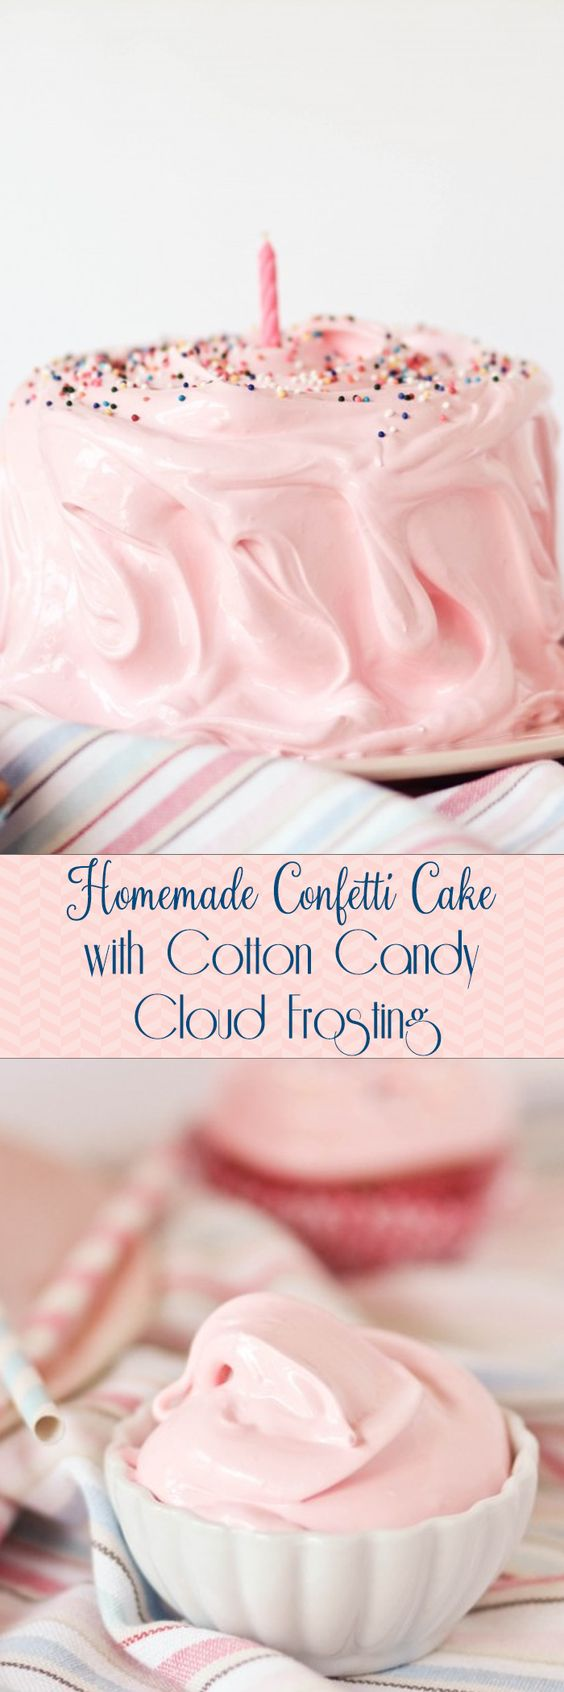 Homemade Confetti Cake with Cotton Candy Cloud Frosting